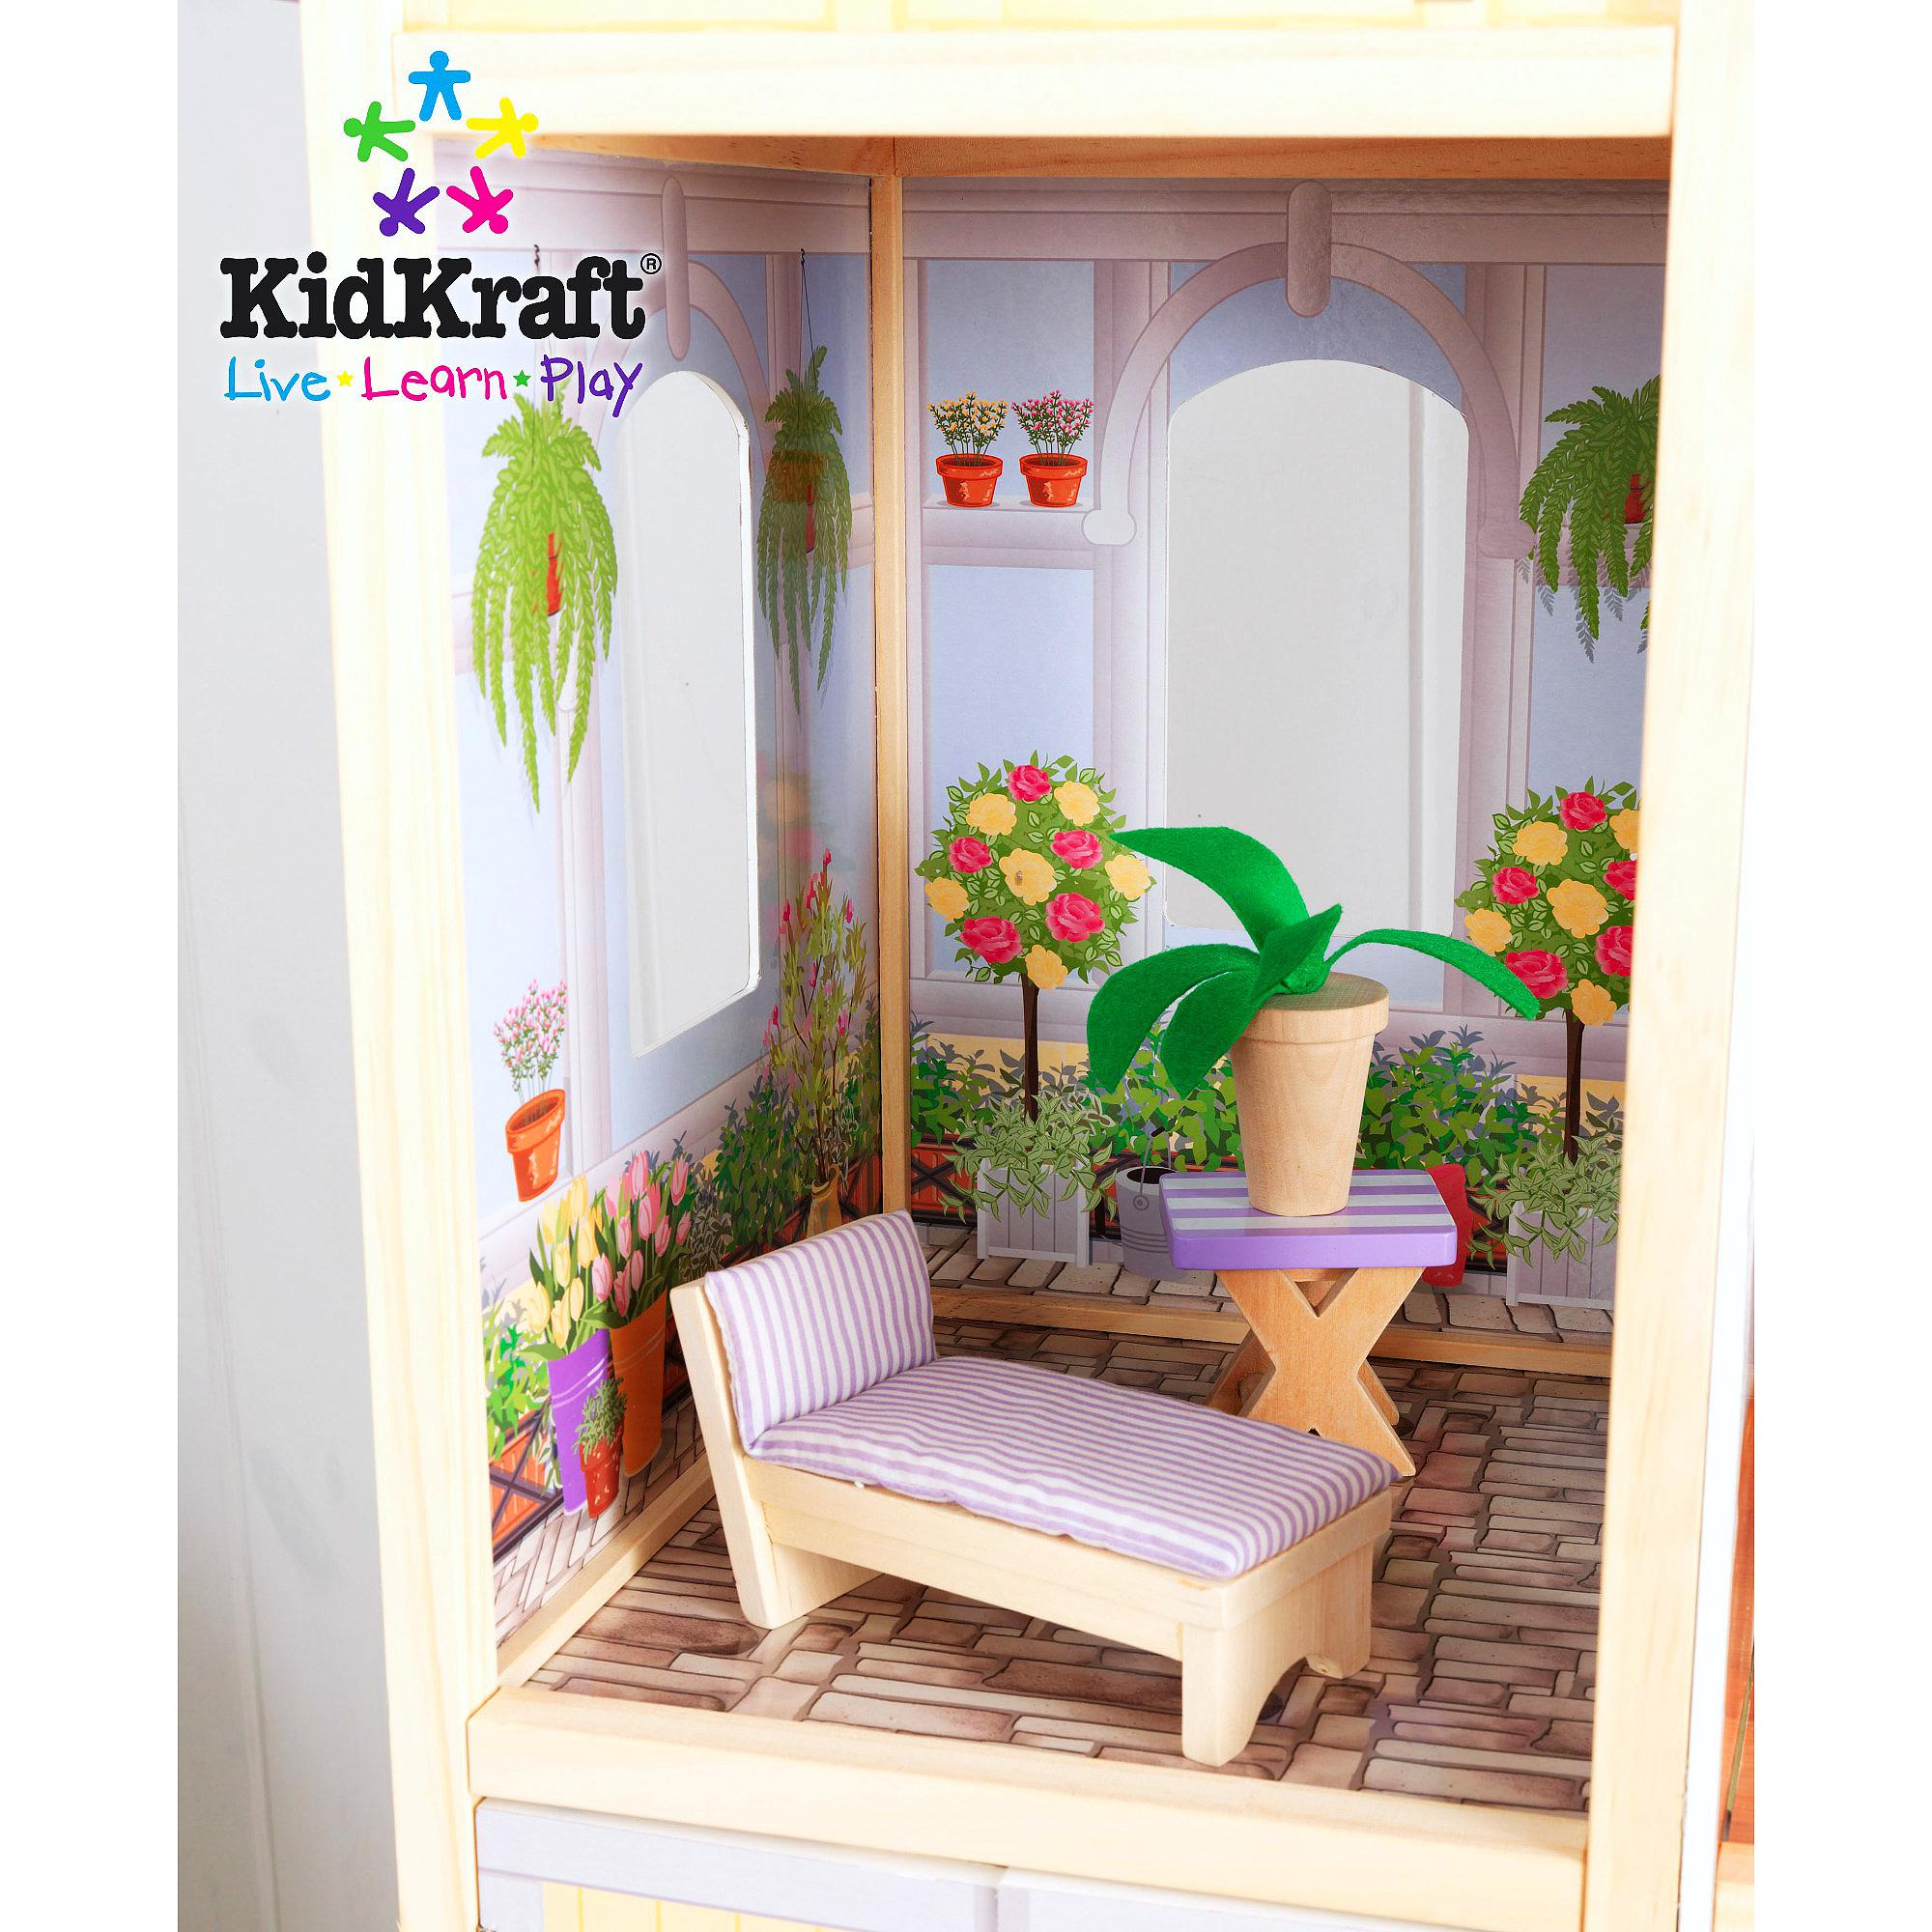 Lovely Kidkraft Majestic Mansion Dollhouse 65252 For Kids Play Room Furniture Ideas: Wonderful Kidkraft Majestic Mansion Dollhouse 65252 Made Of Wood With Kidkraf Furniture For Kids Play Room Furniture Ideas